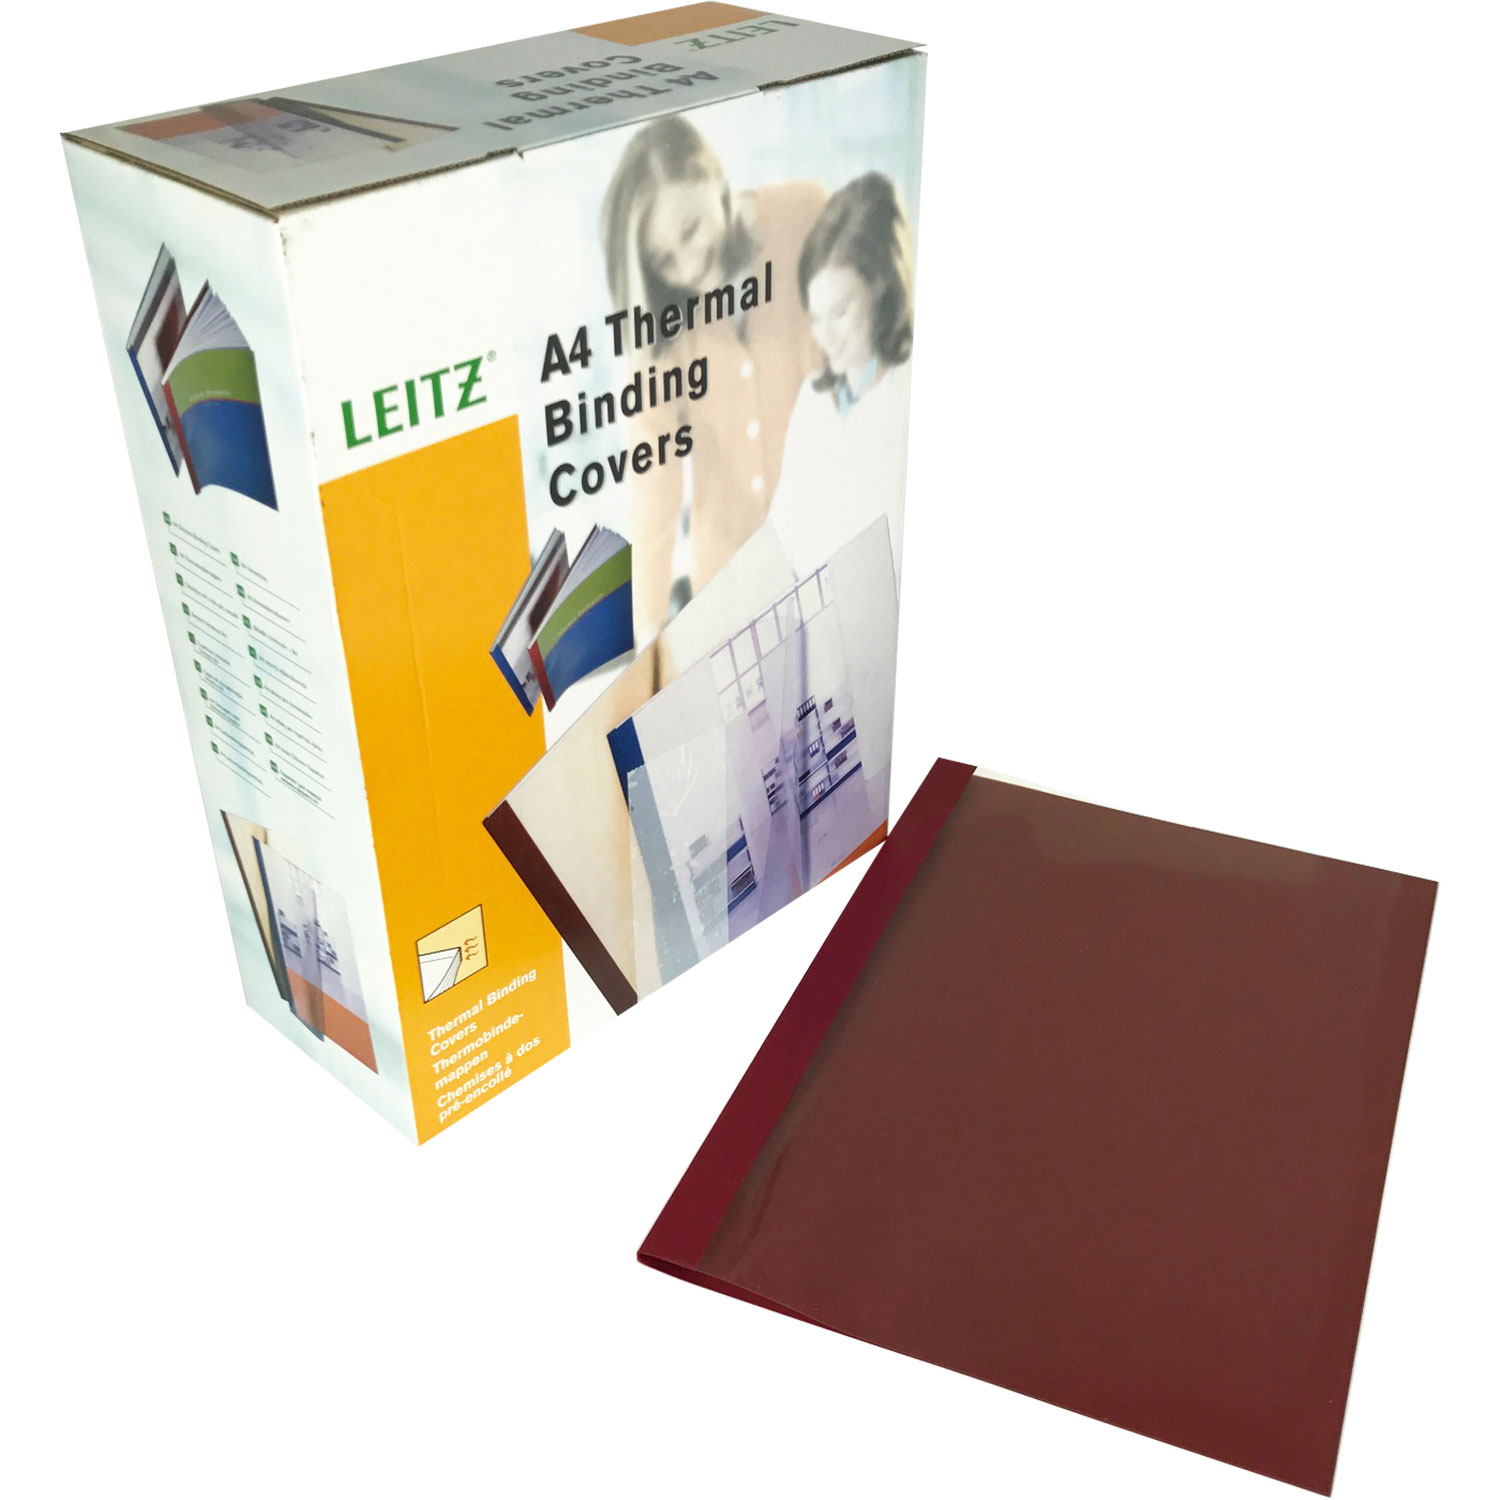 Leitz A4 Burgundy Leathergrain Thermal Binding Covers (100)